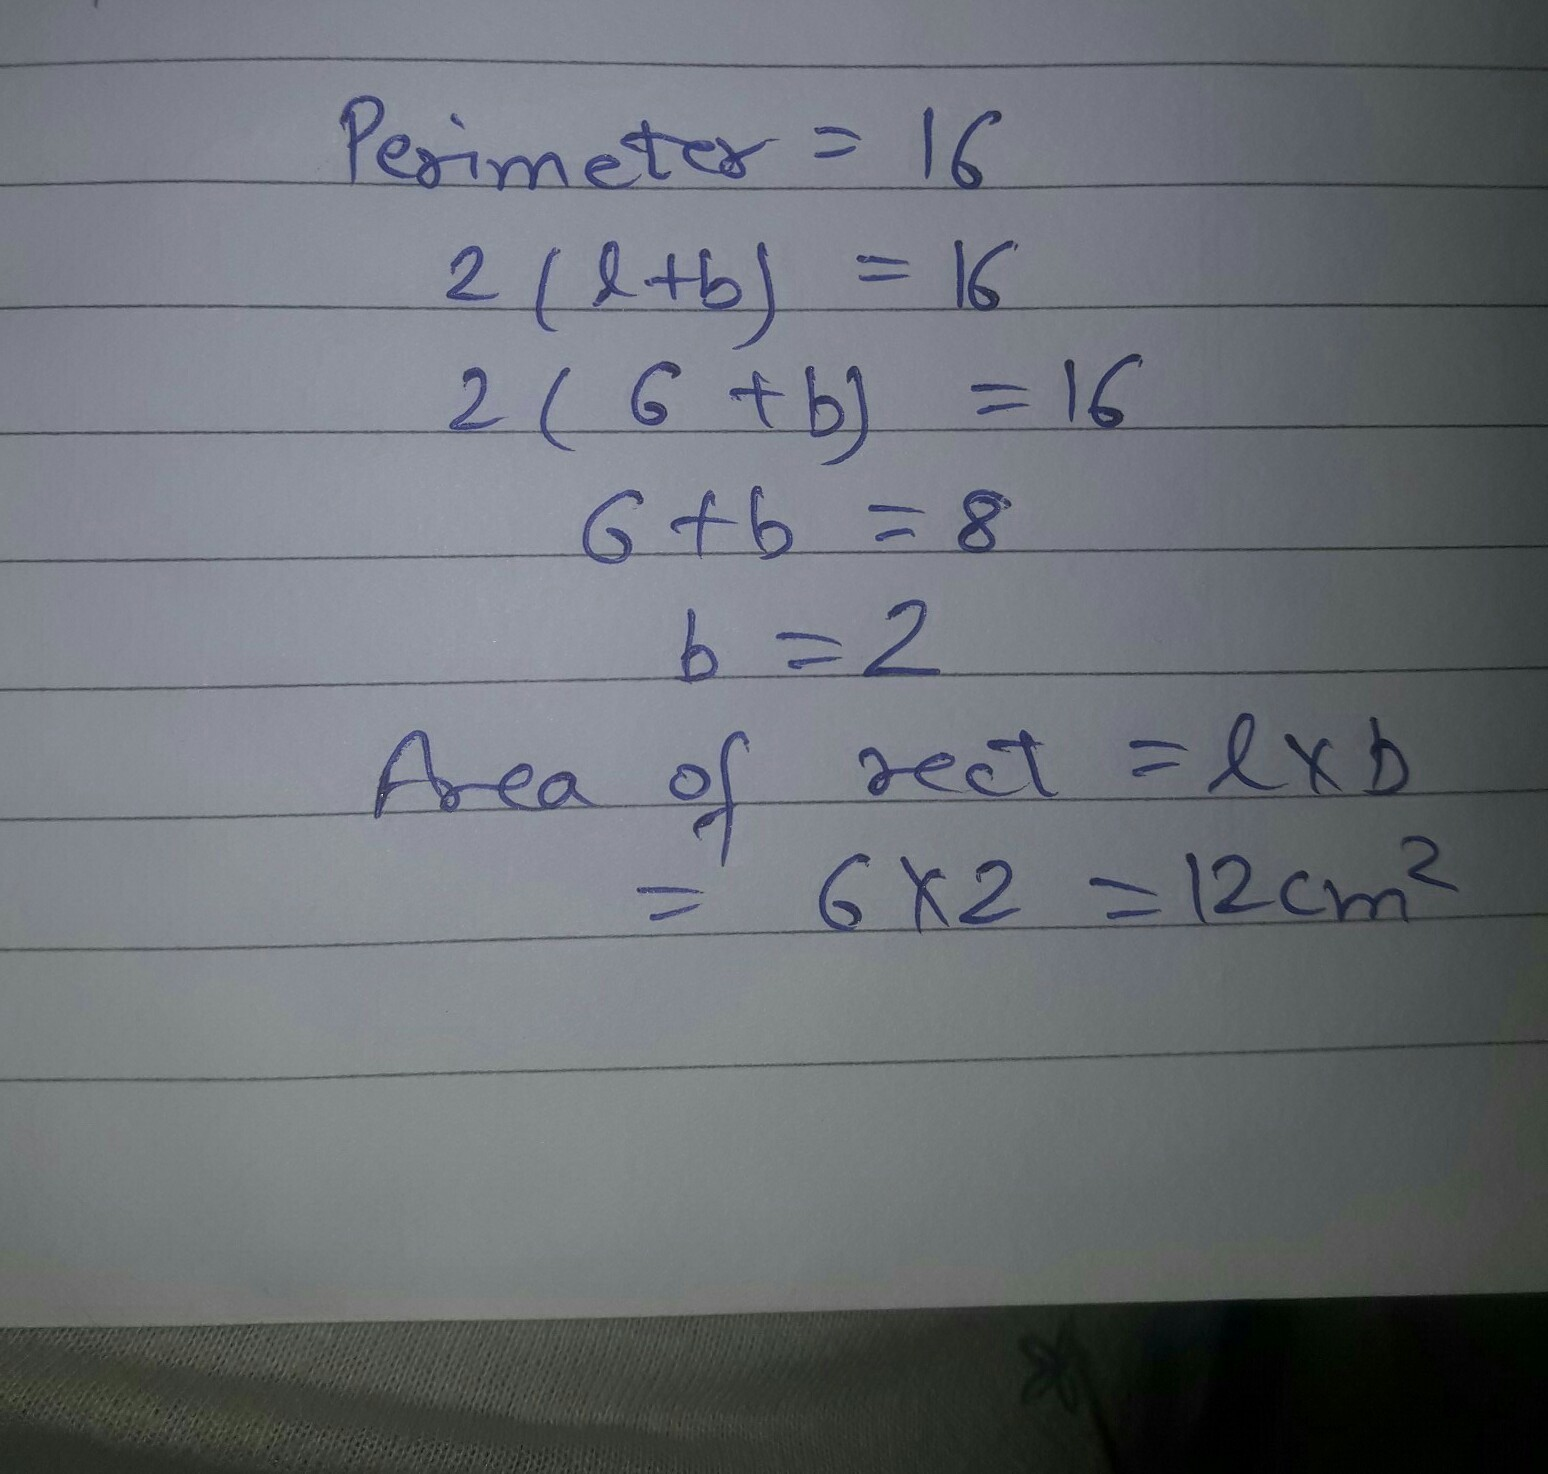 The Length Of A Rectangle Is 6cm And Its Perimeter Is 16cm